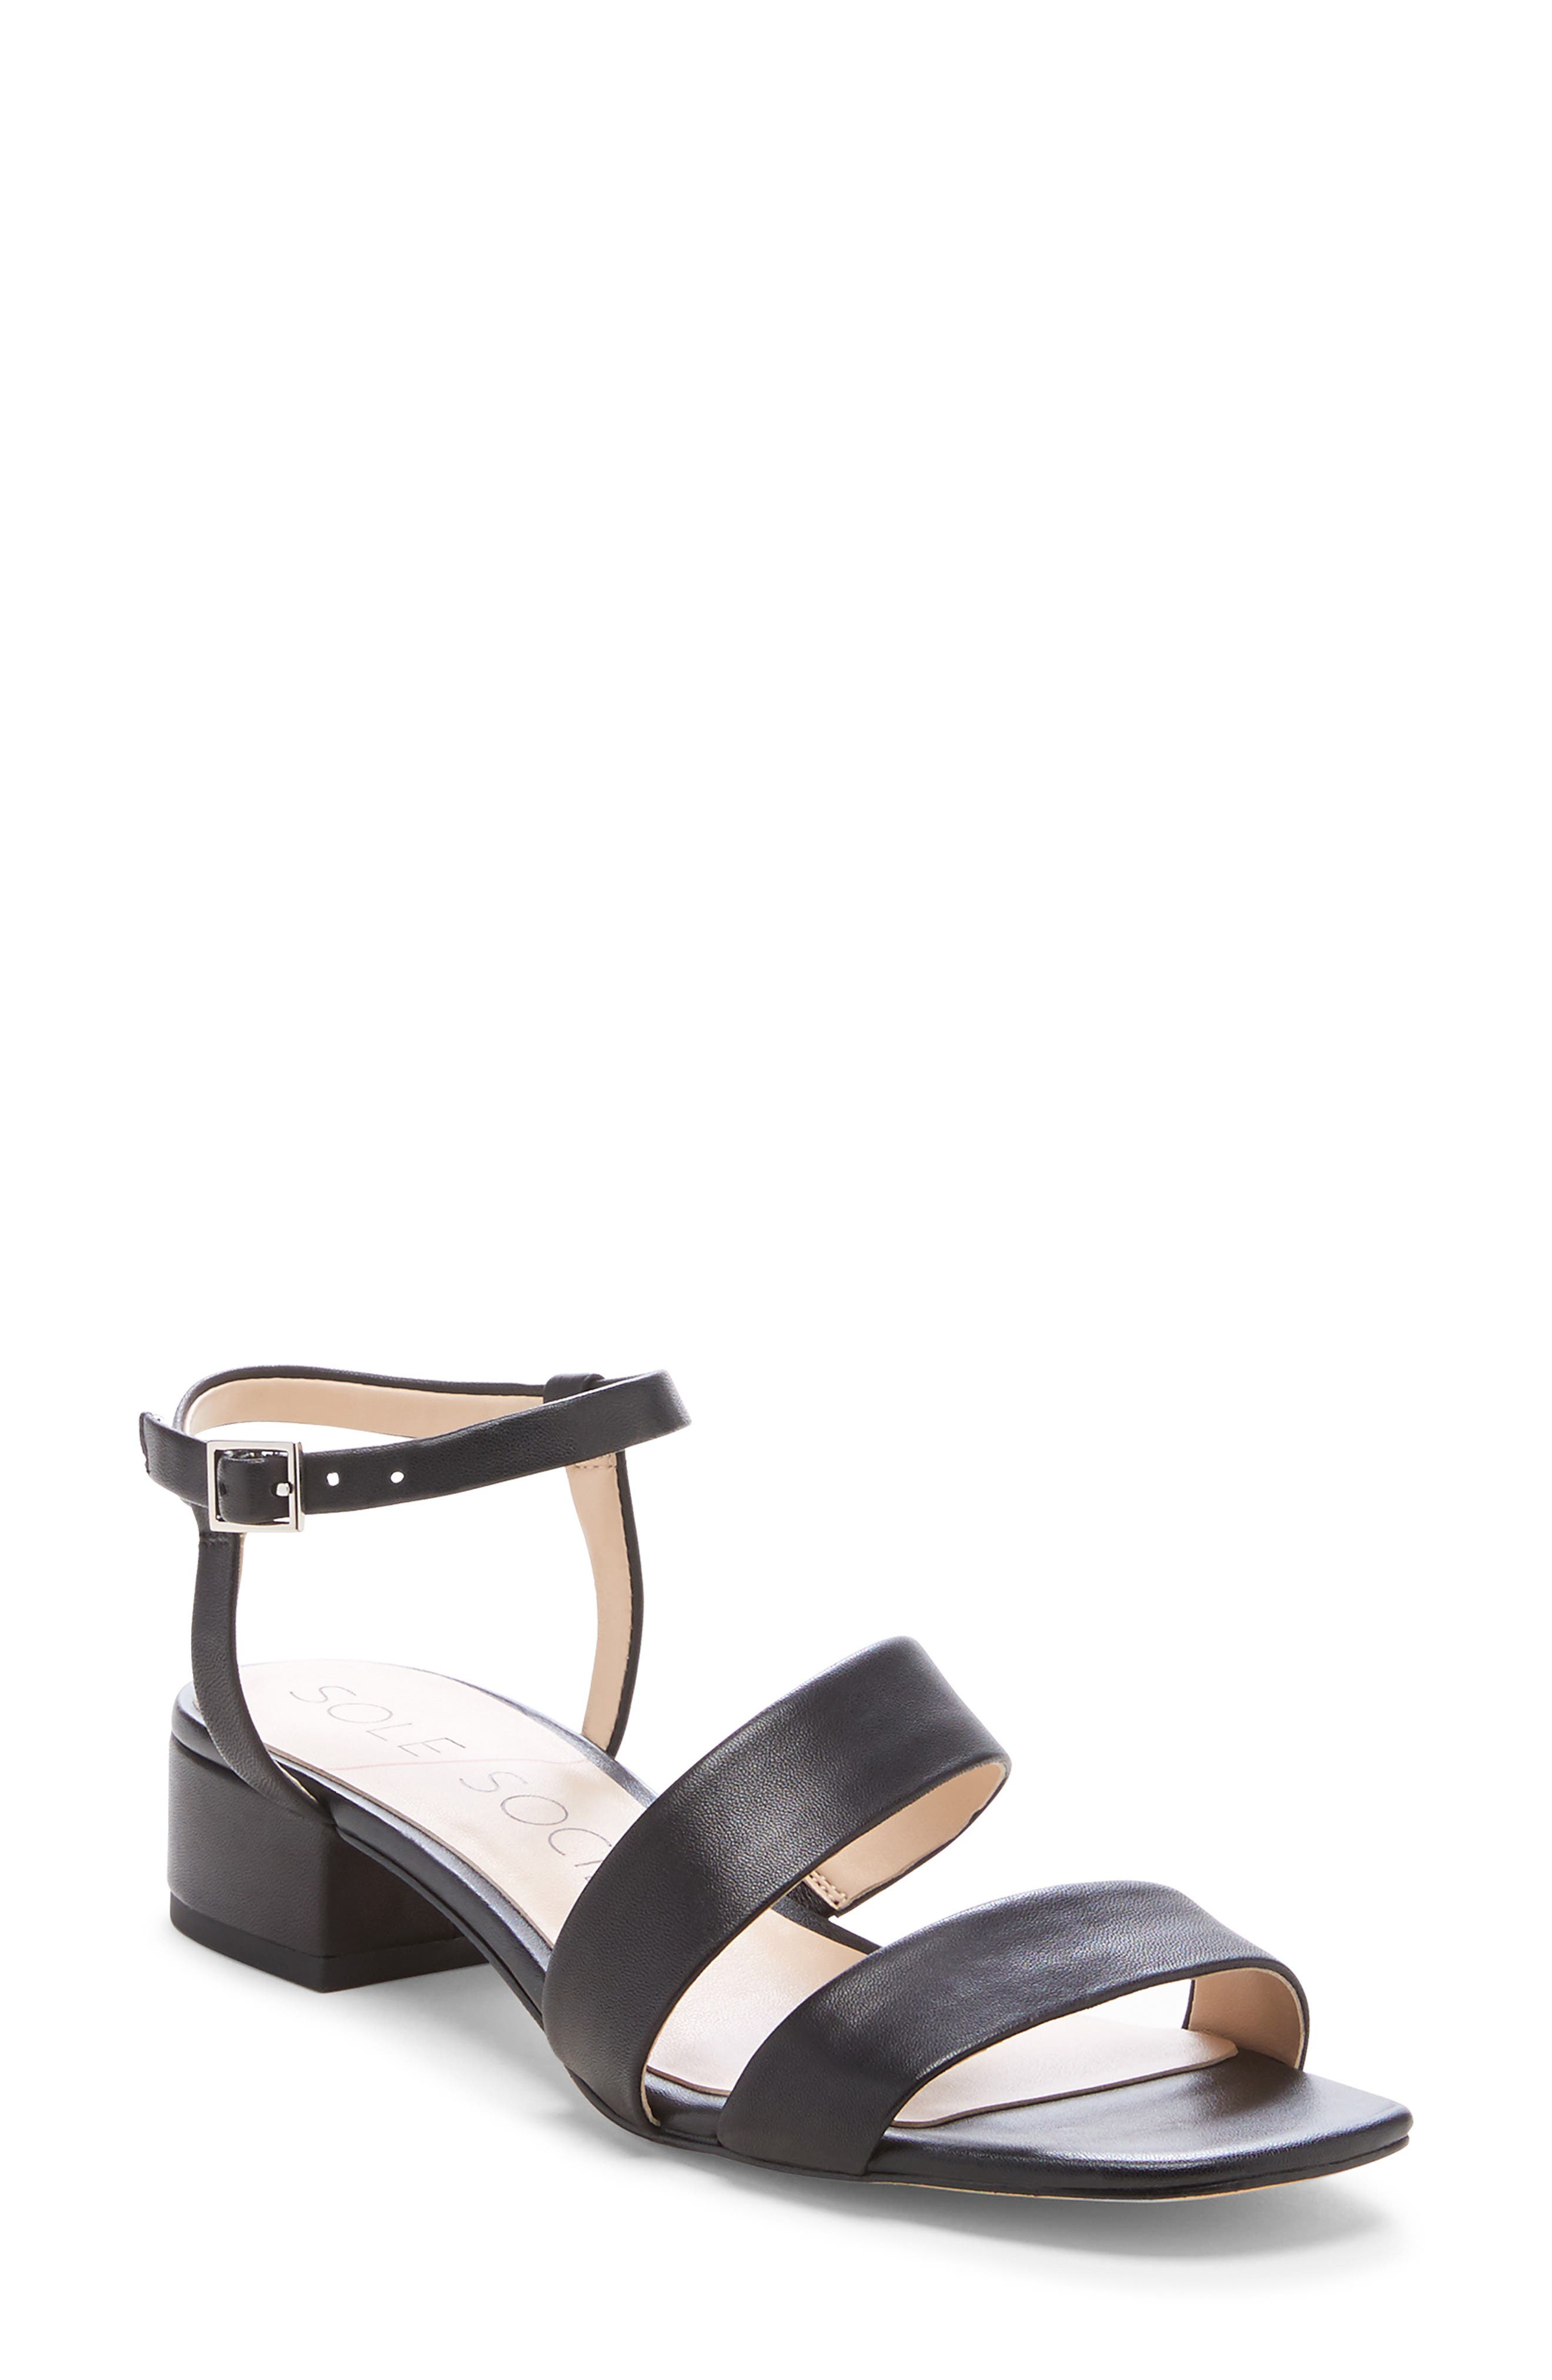 Francey Sandal by Sole Society